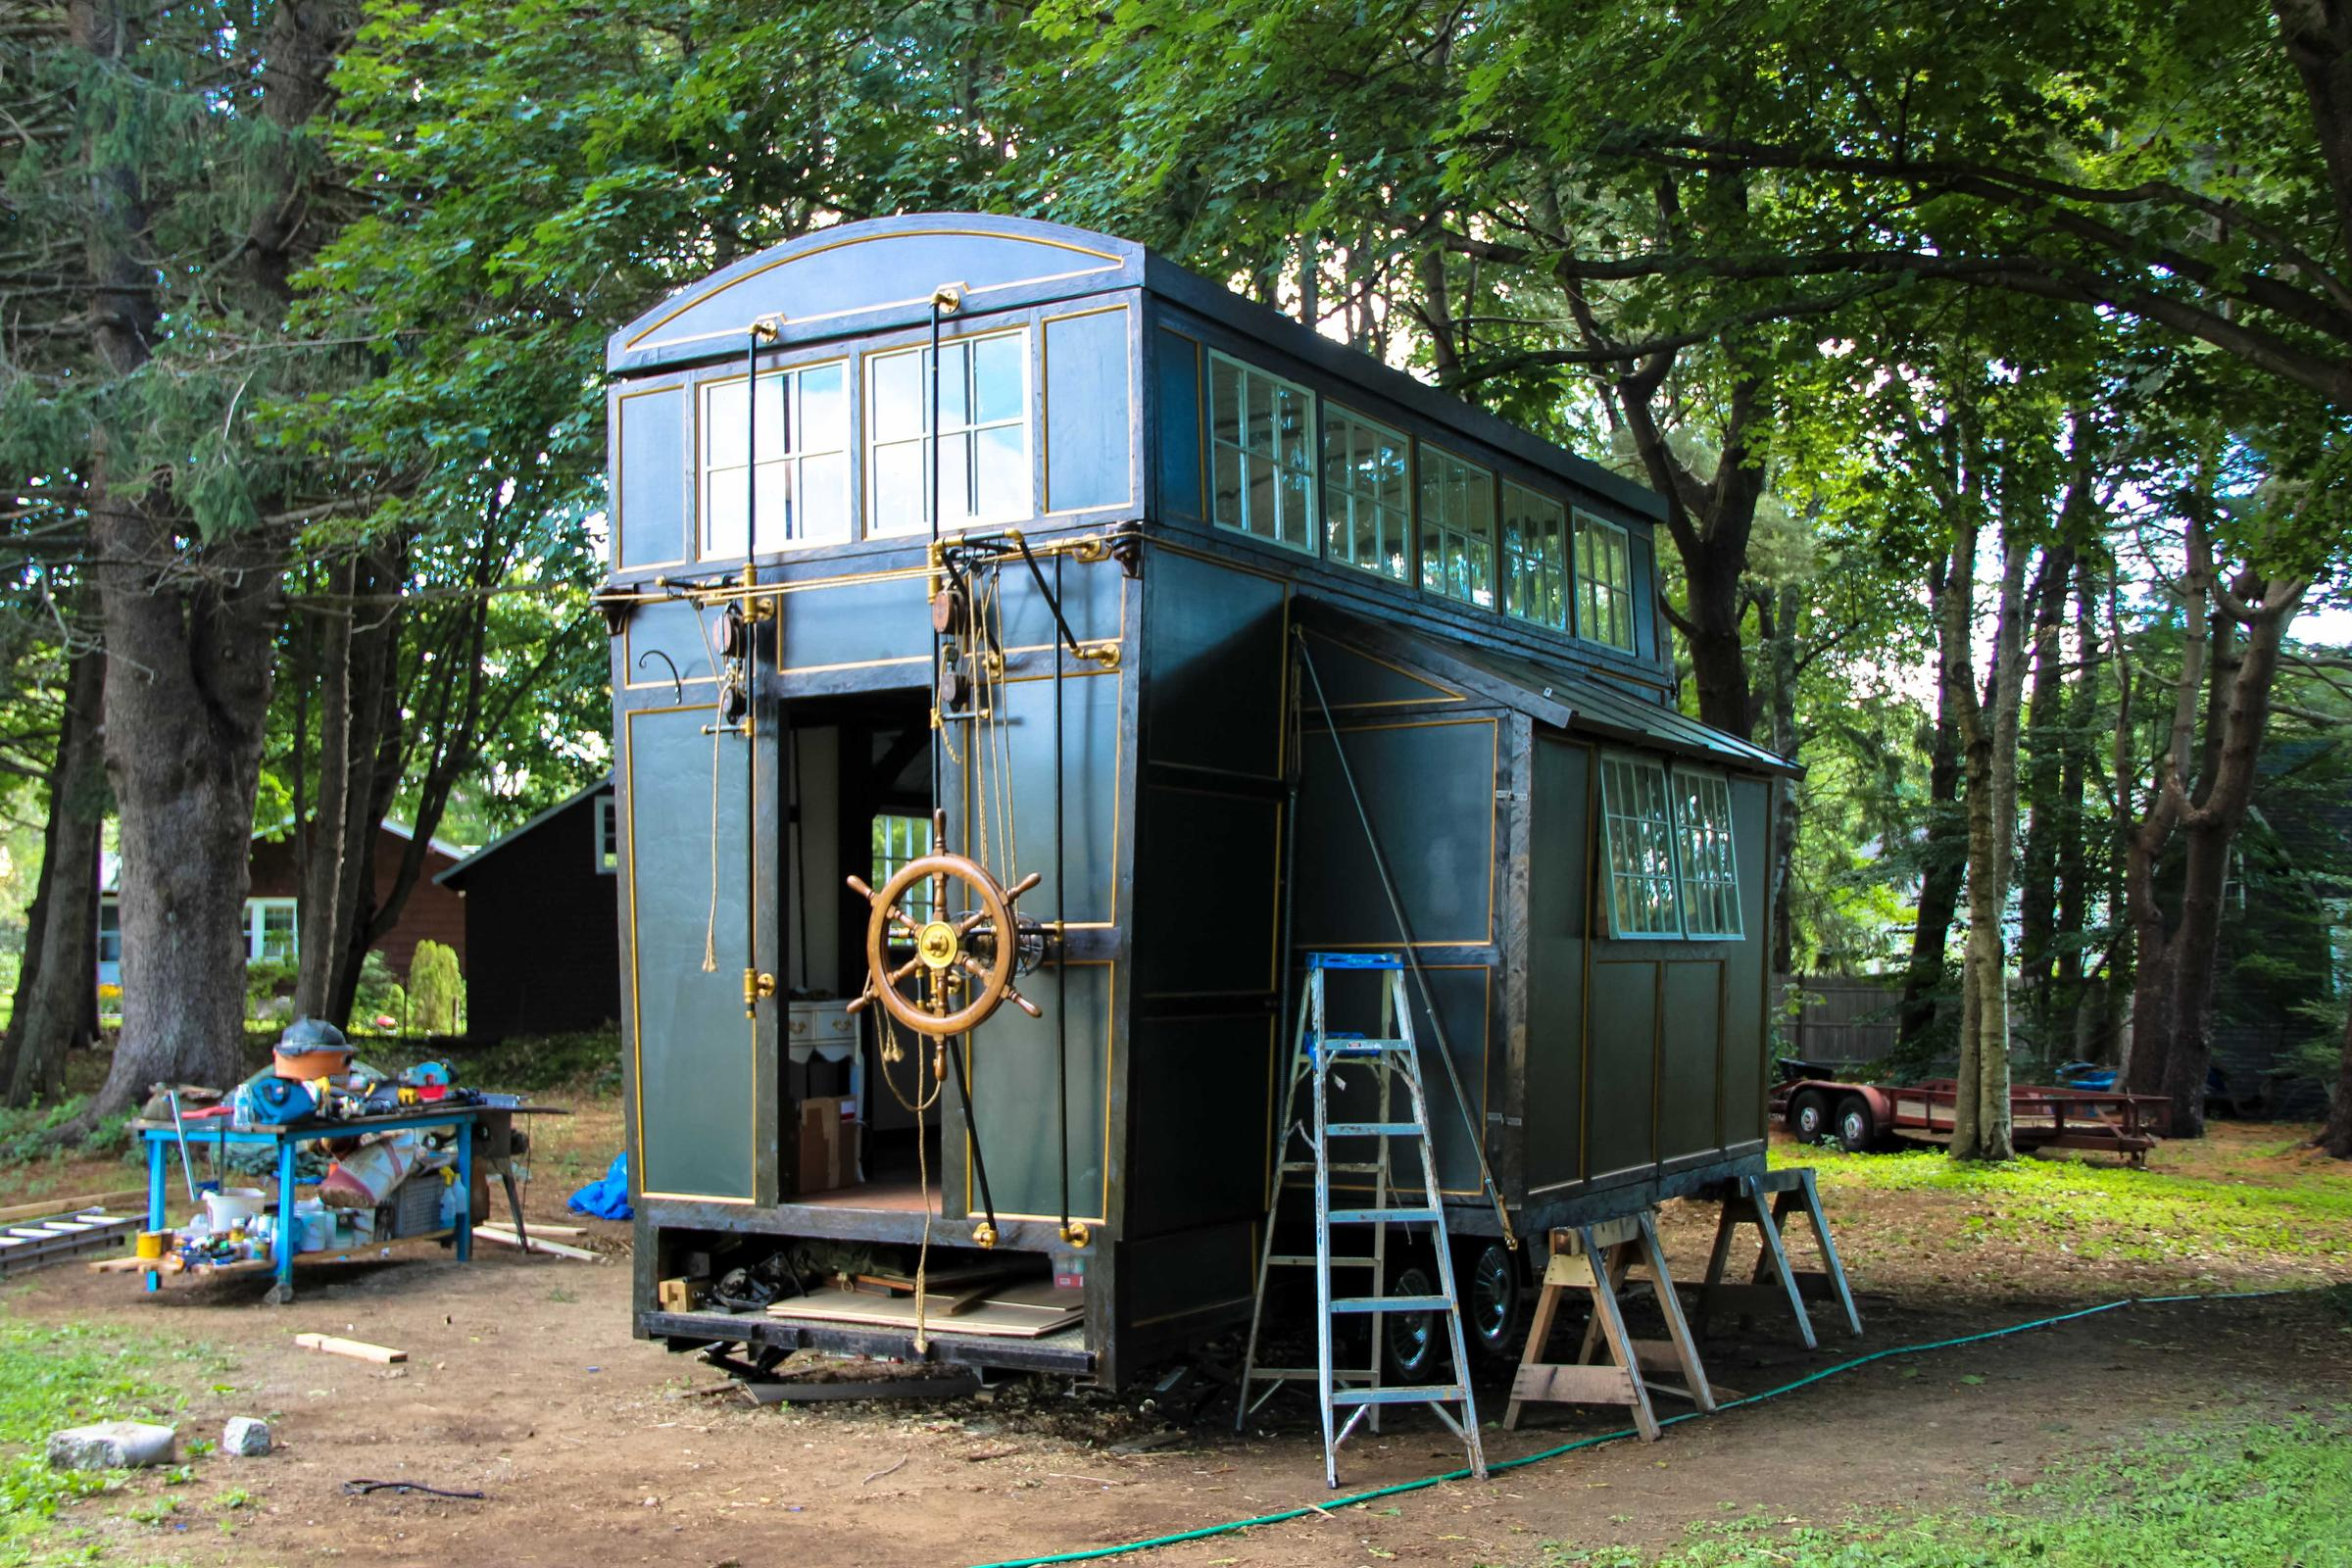 Steampunk Steamer Trunk A Tiny House Contraption On Wheels New Hampshire Public Radio